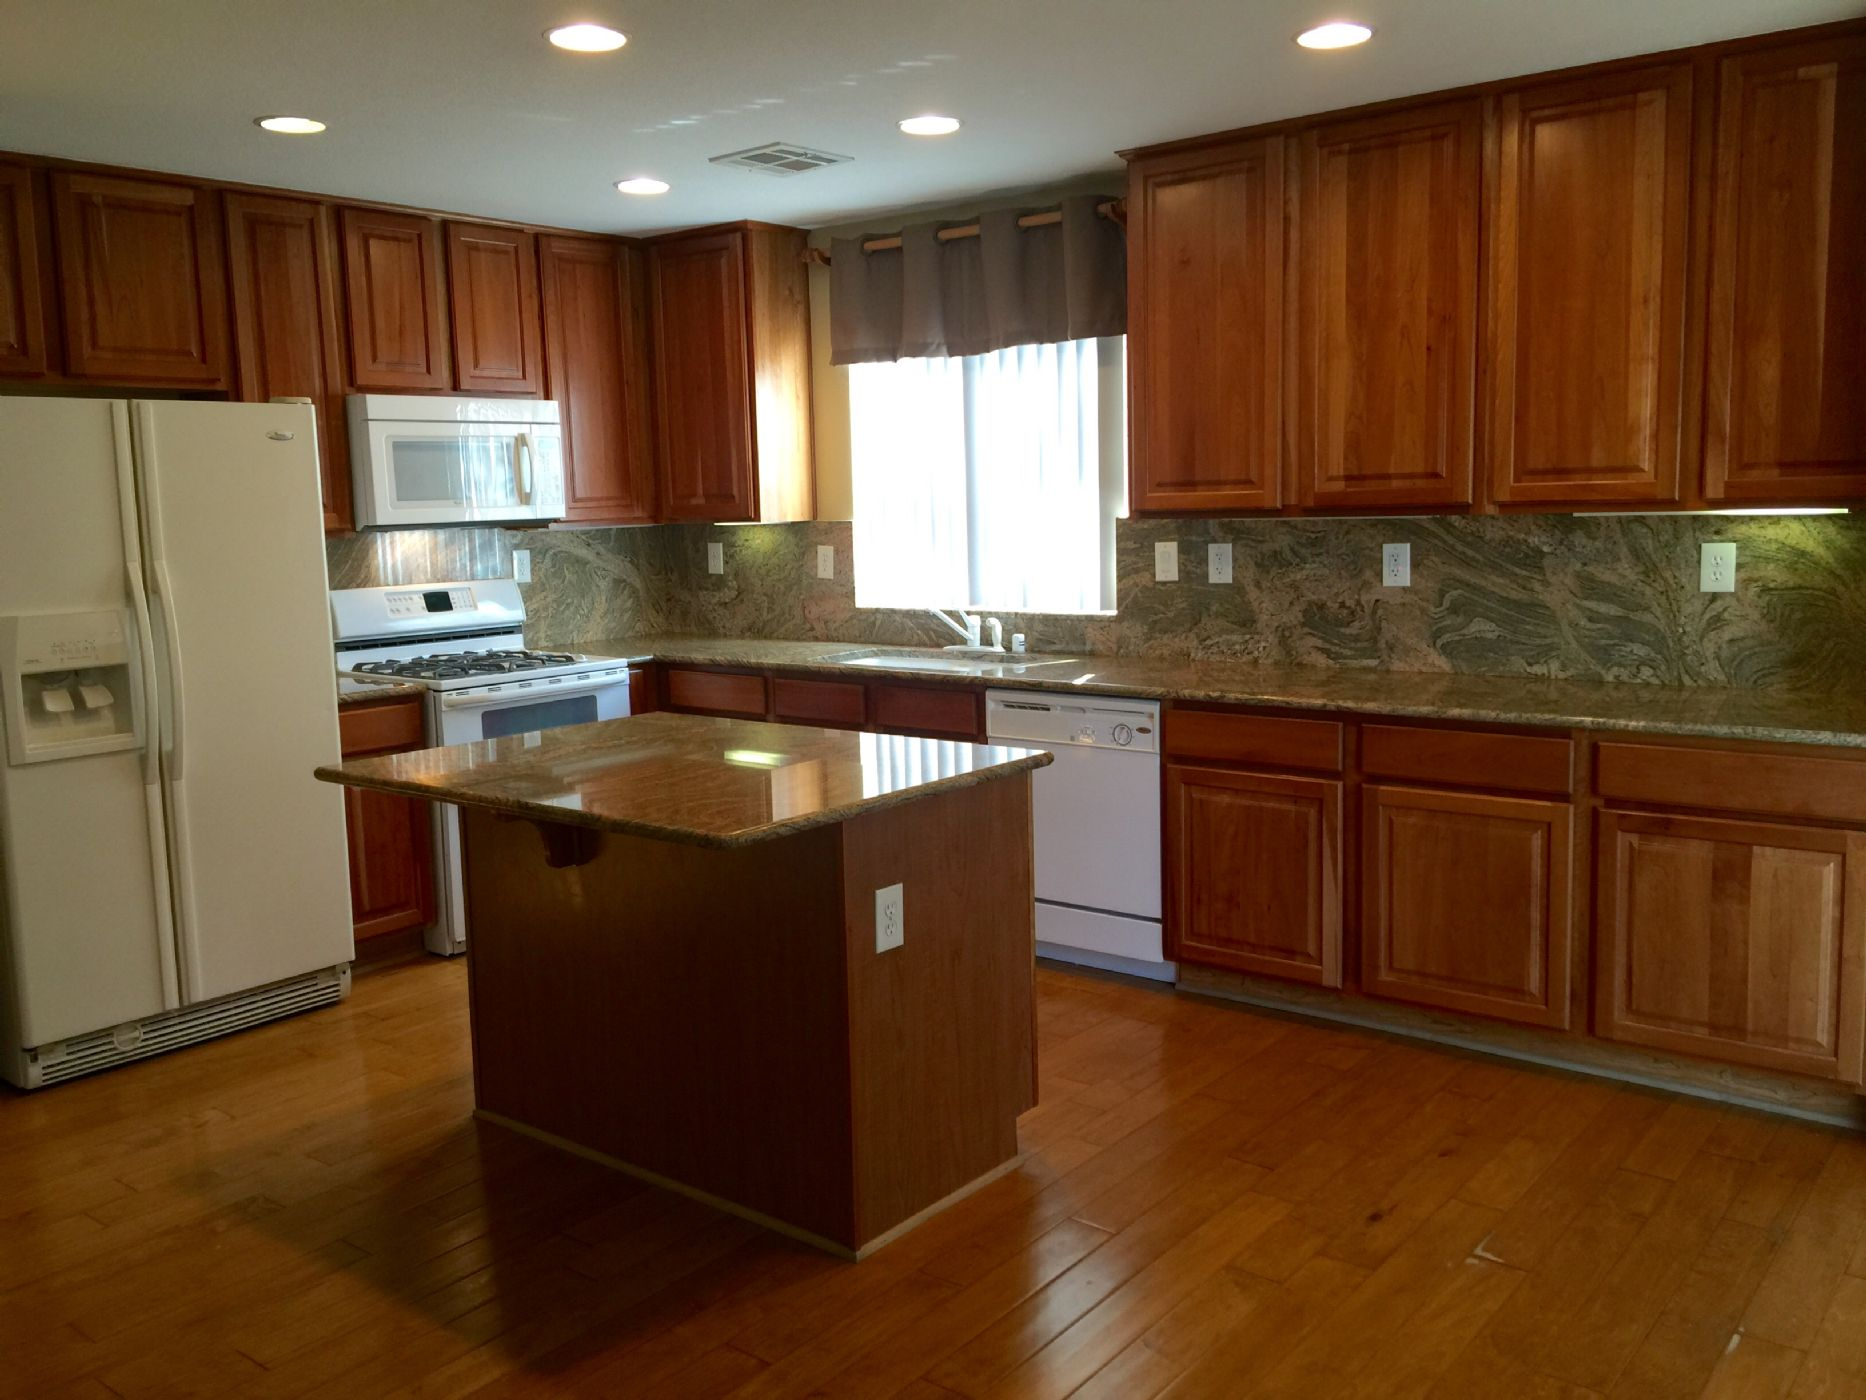 FORMER MODEL HOME in MOUNTAIN S EDGE FOR RENT. FORMER MODEL HOME in MOUNTAIN S EDGE FOR RENT   7944 AVALON VALLEY